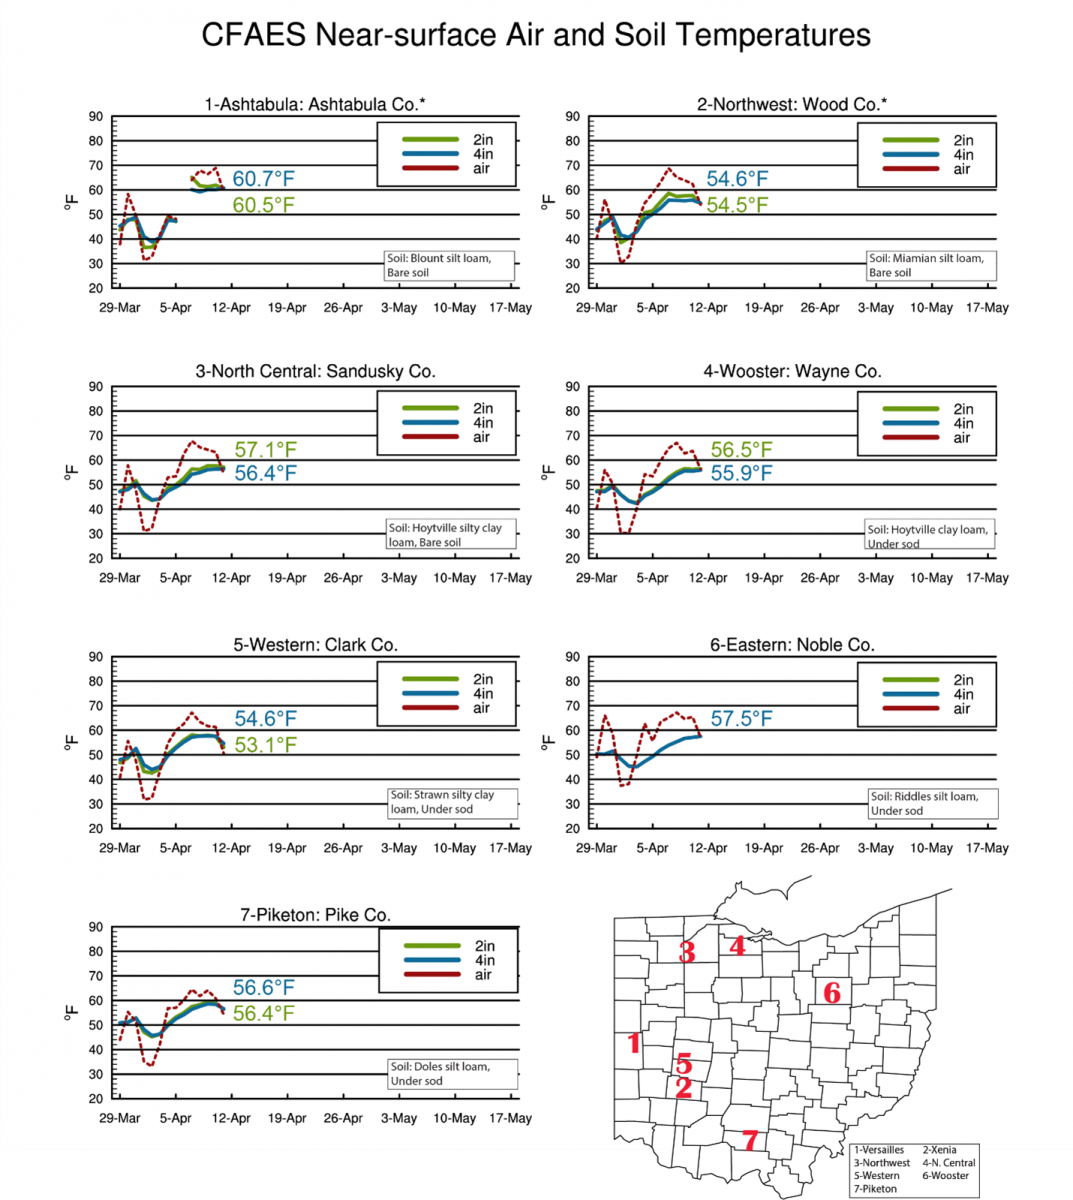 CFAES Near-surface Air and Soil Temperatures